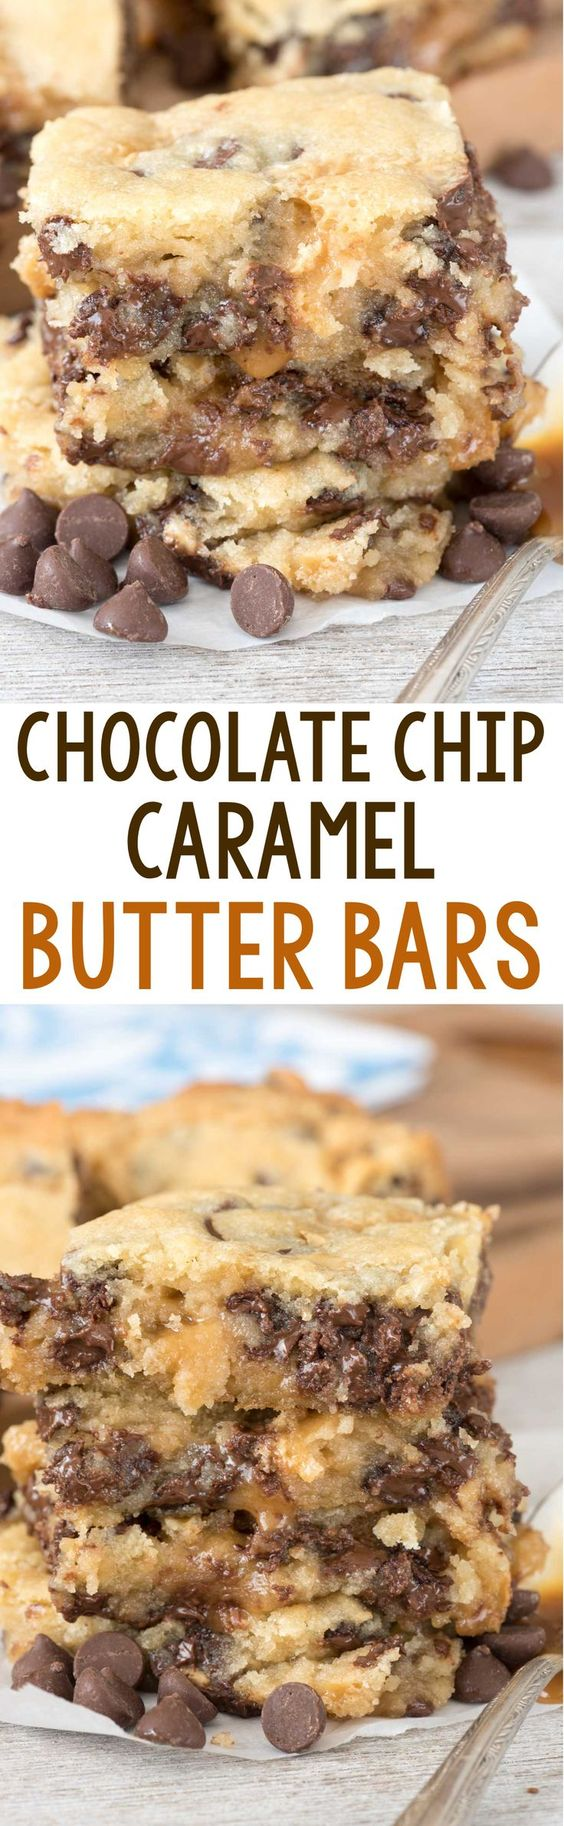 Chocolate Chip Caramel Butter Bars Recipe via Crazy for Crust - easy sugar cookie bars filled with chocolate chips and sandwiched with gooey caramel sauce! These gooey bars are SO addicting. #dessertbars #cookiebars #barsrecipes #dessertforacrowd #partydesserts #christmasdesserts #holidaydesserts #onepandesserts